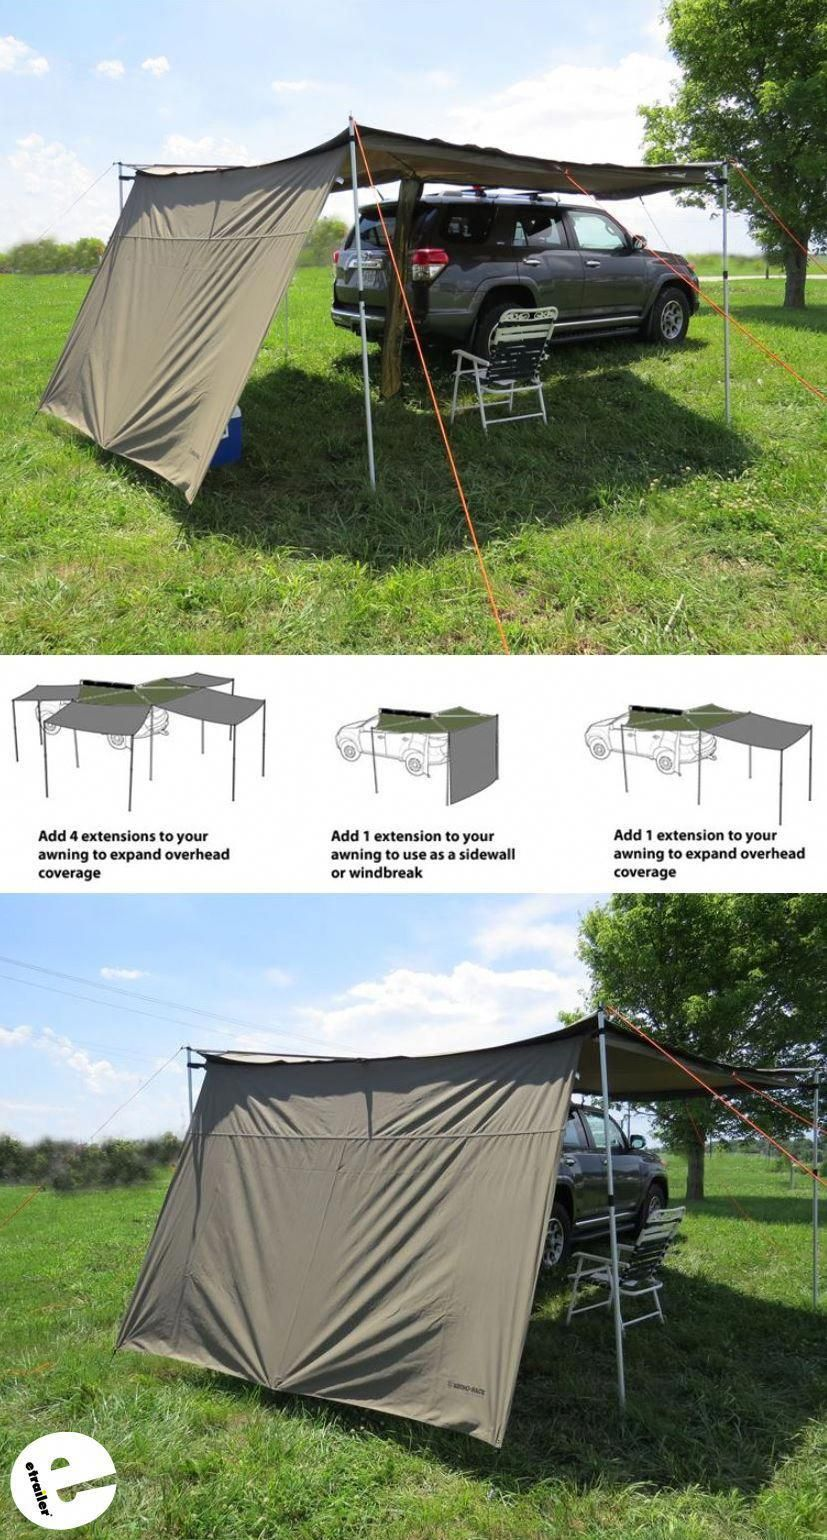 Get More Out Of Your Rhino Rack Foxwing Awning With This Extension Piece The Canvas Extension Simply Zips Into Camping Gear Diy Camping Gear Best Camping Gear